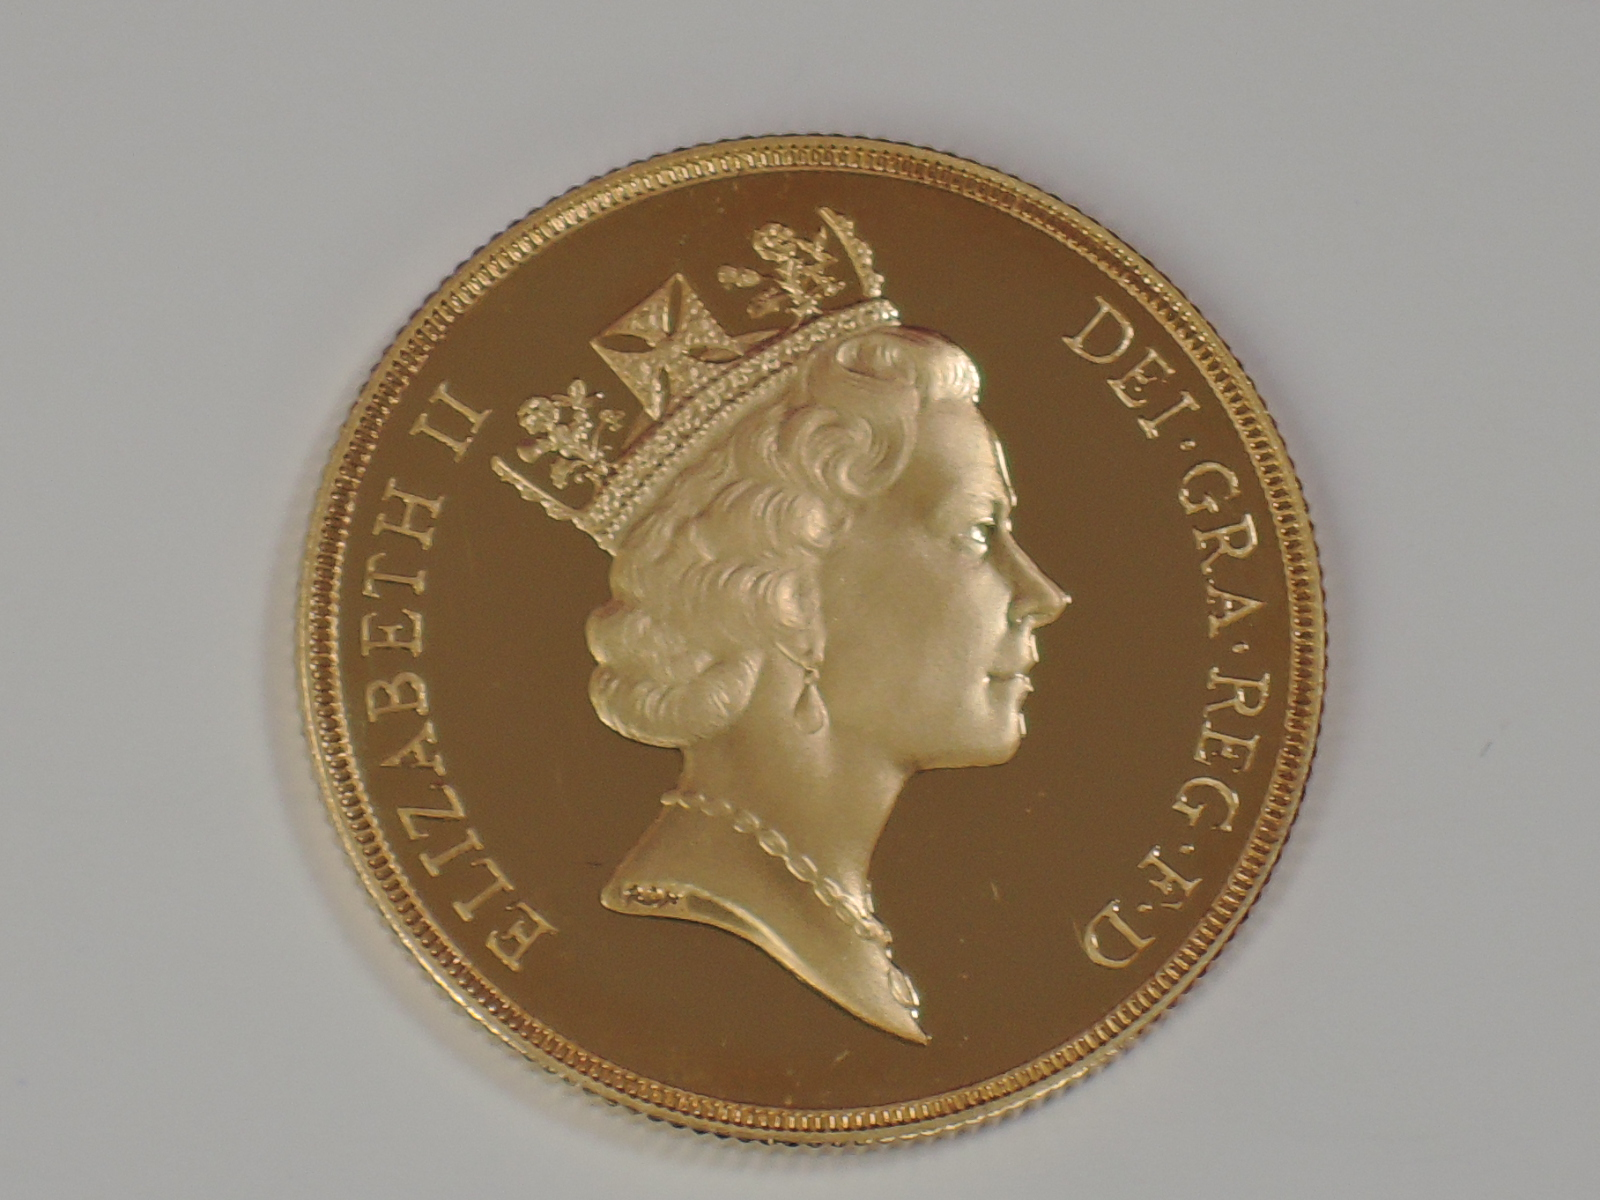 Lot 651 - A gold 16g Great Britain double Sovereign coin, in plastic case